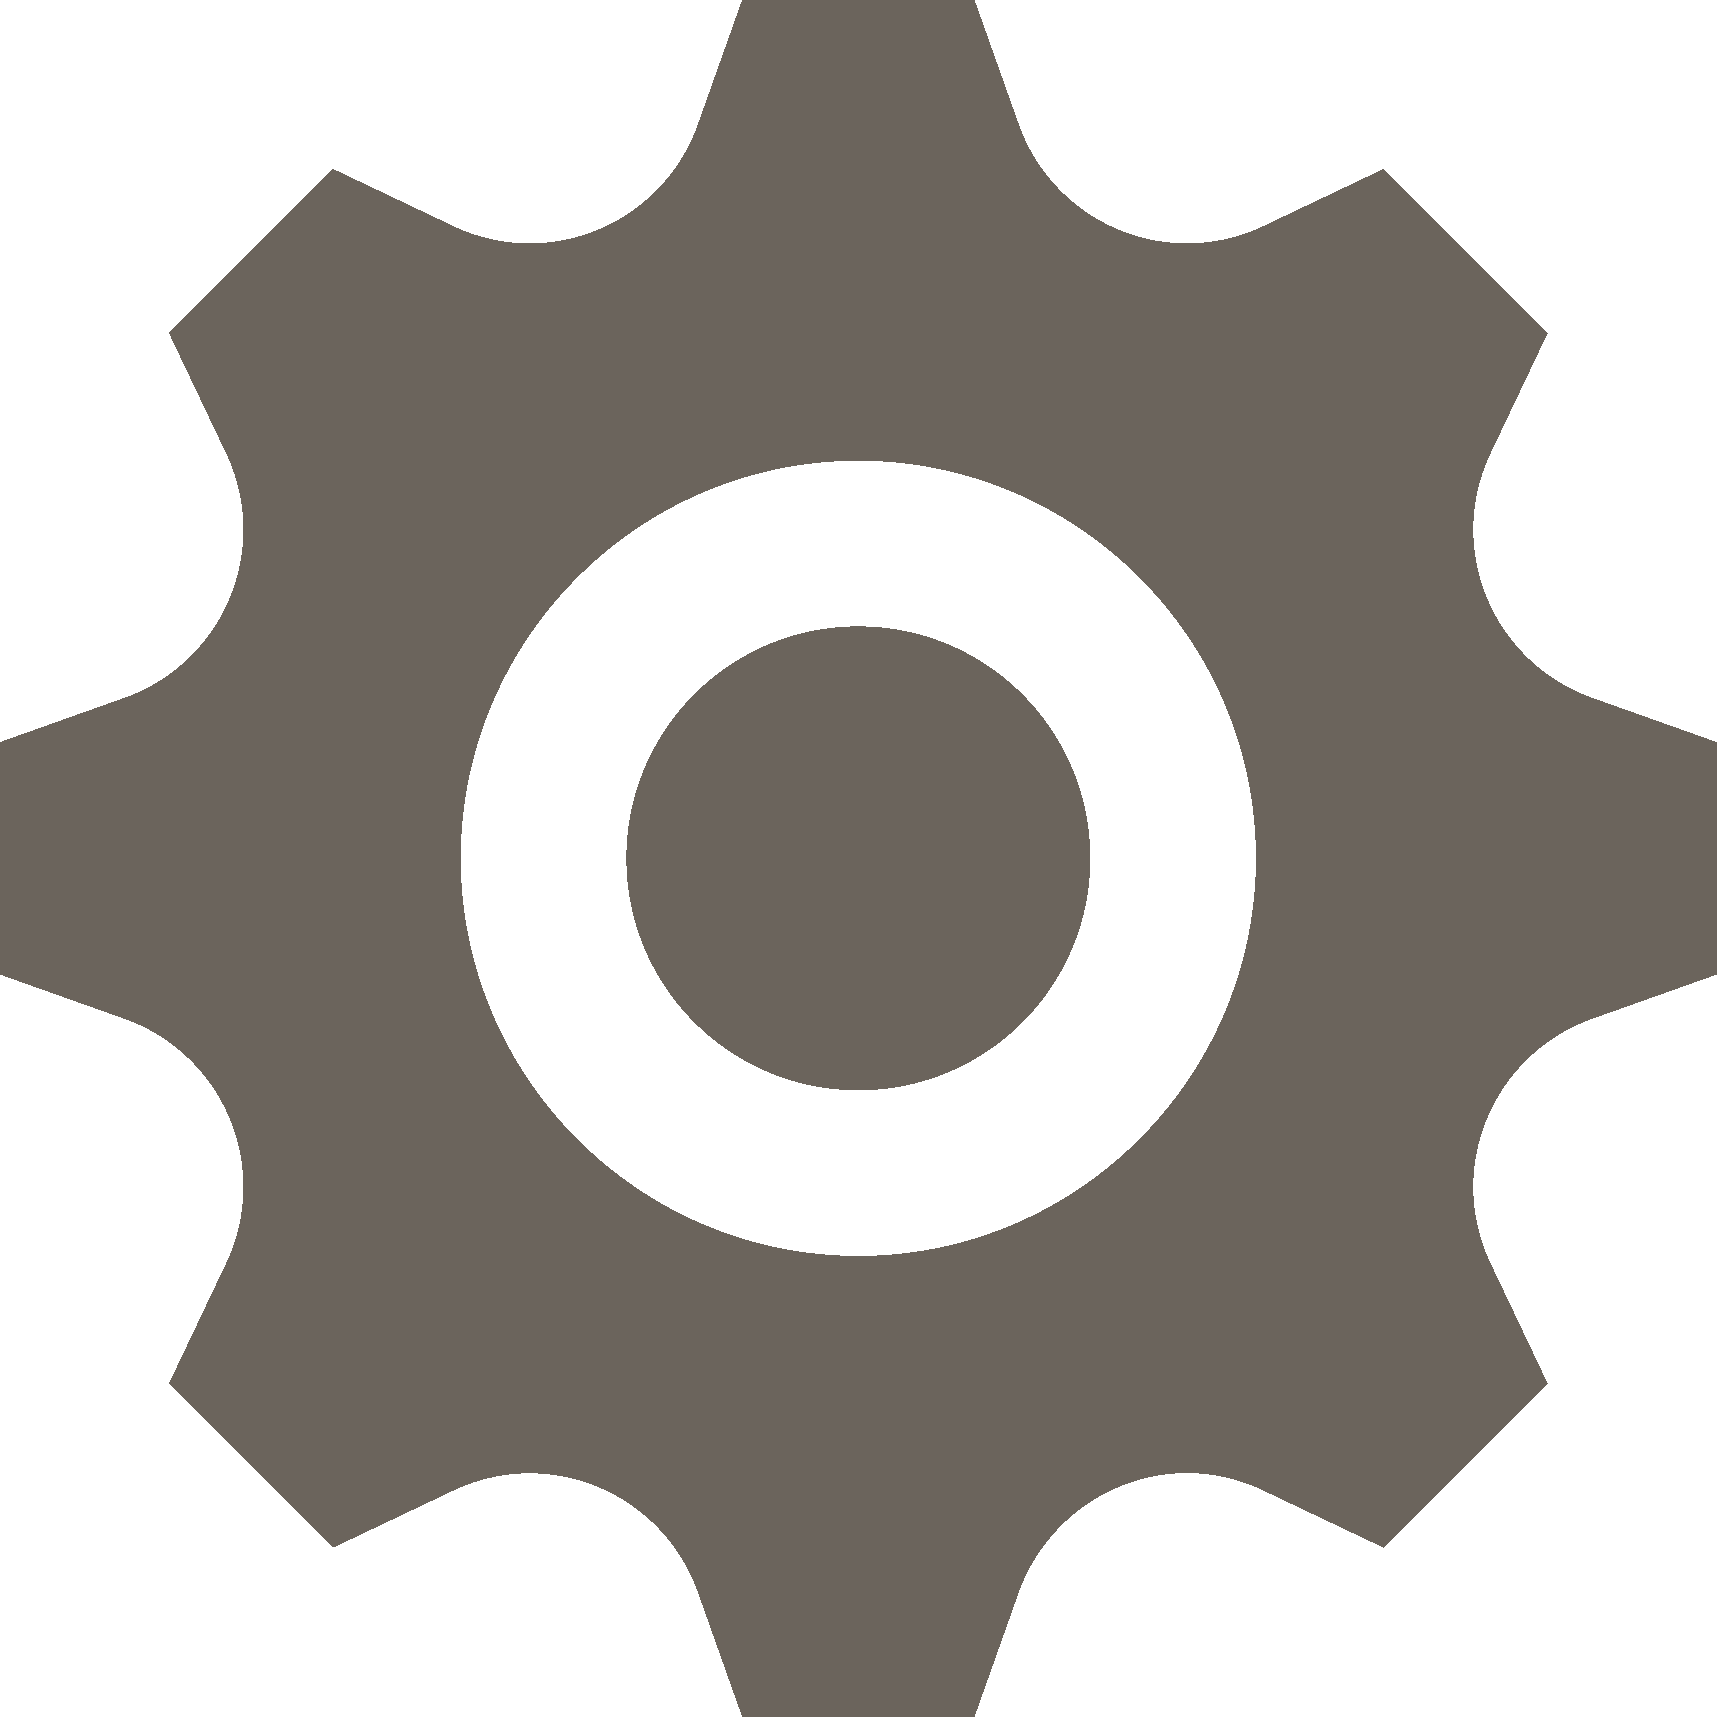 Gear icon png. Drawing vector free icons